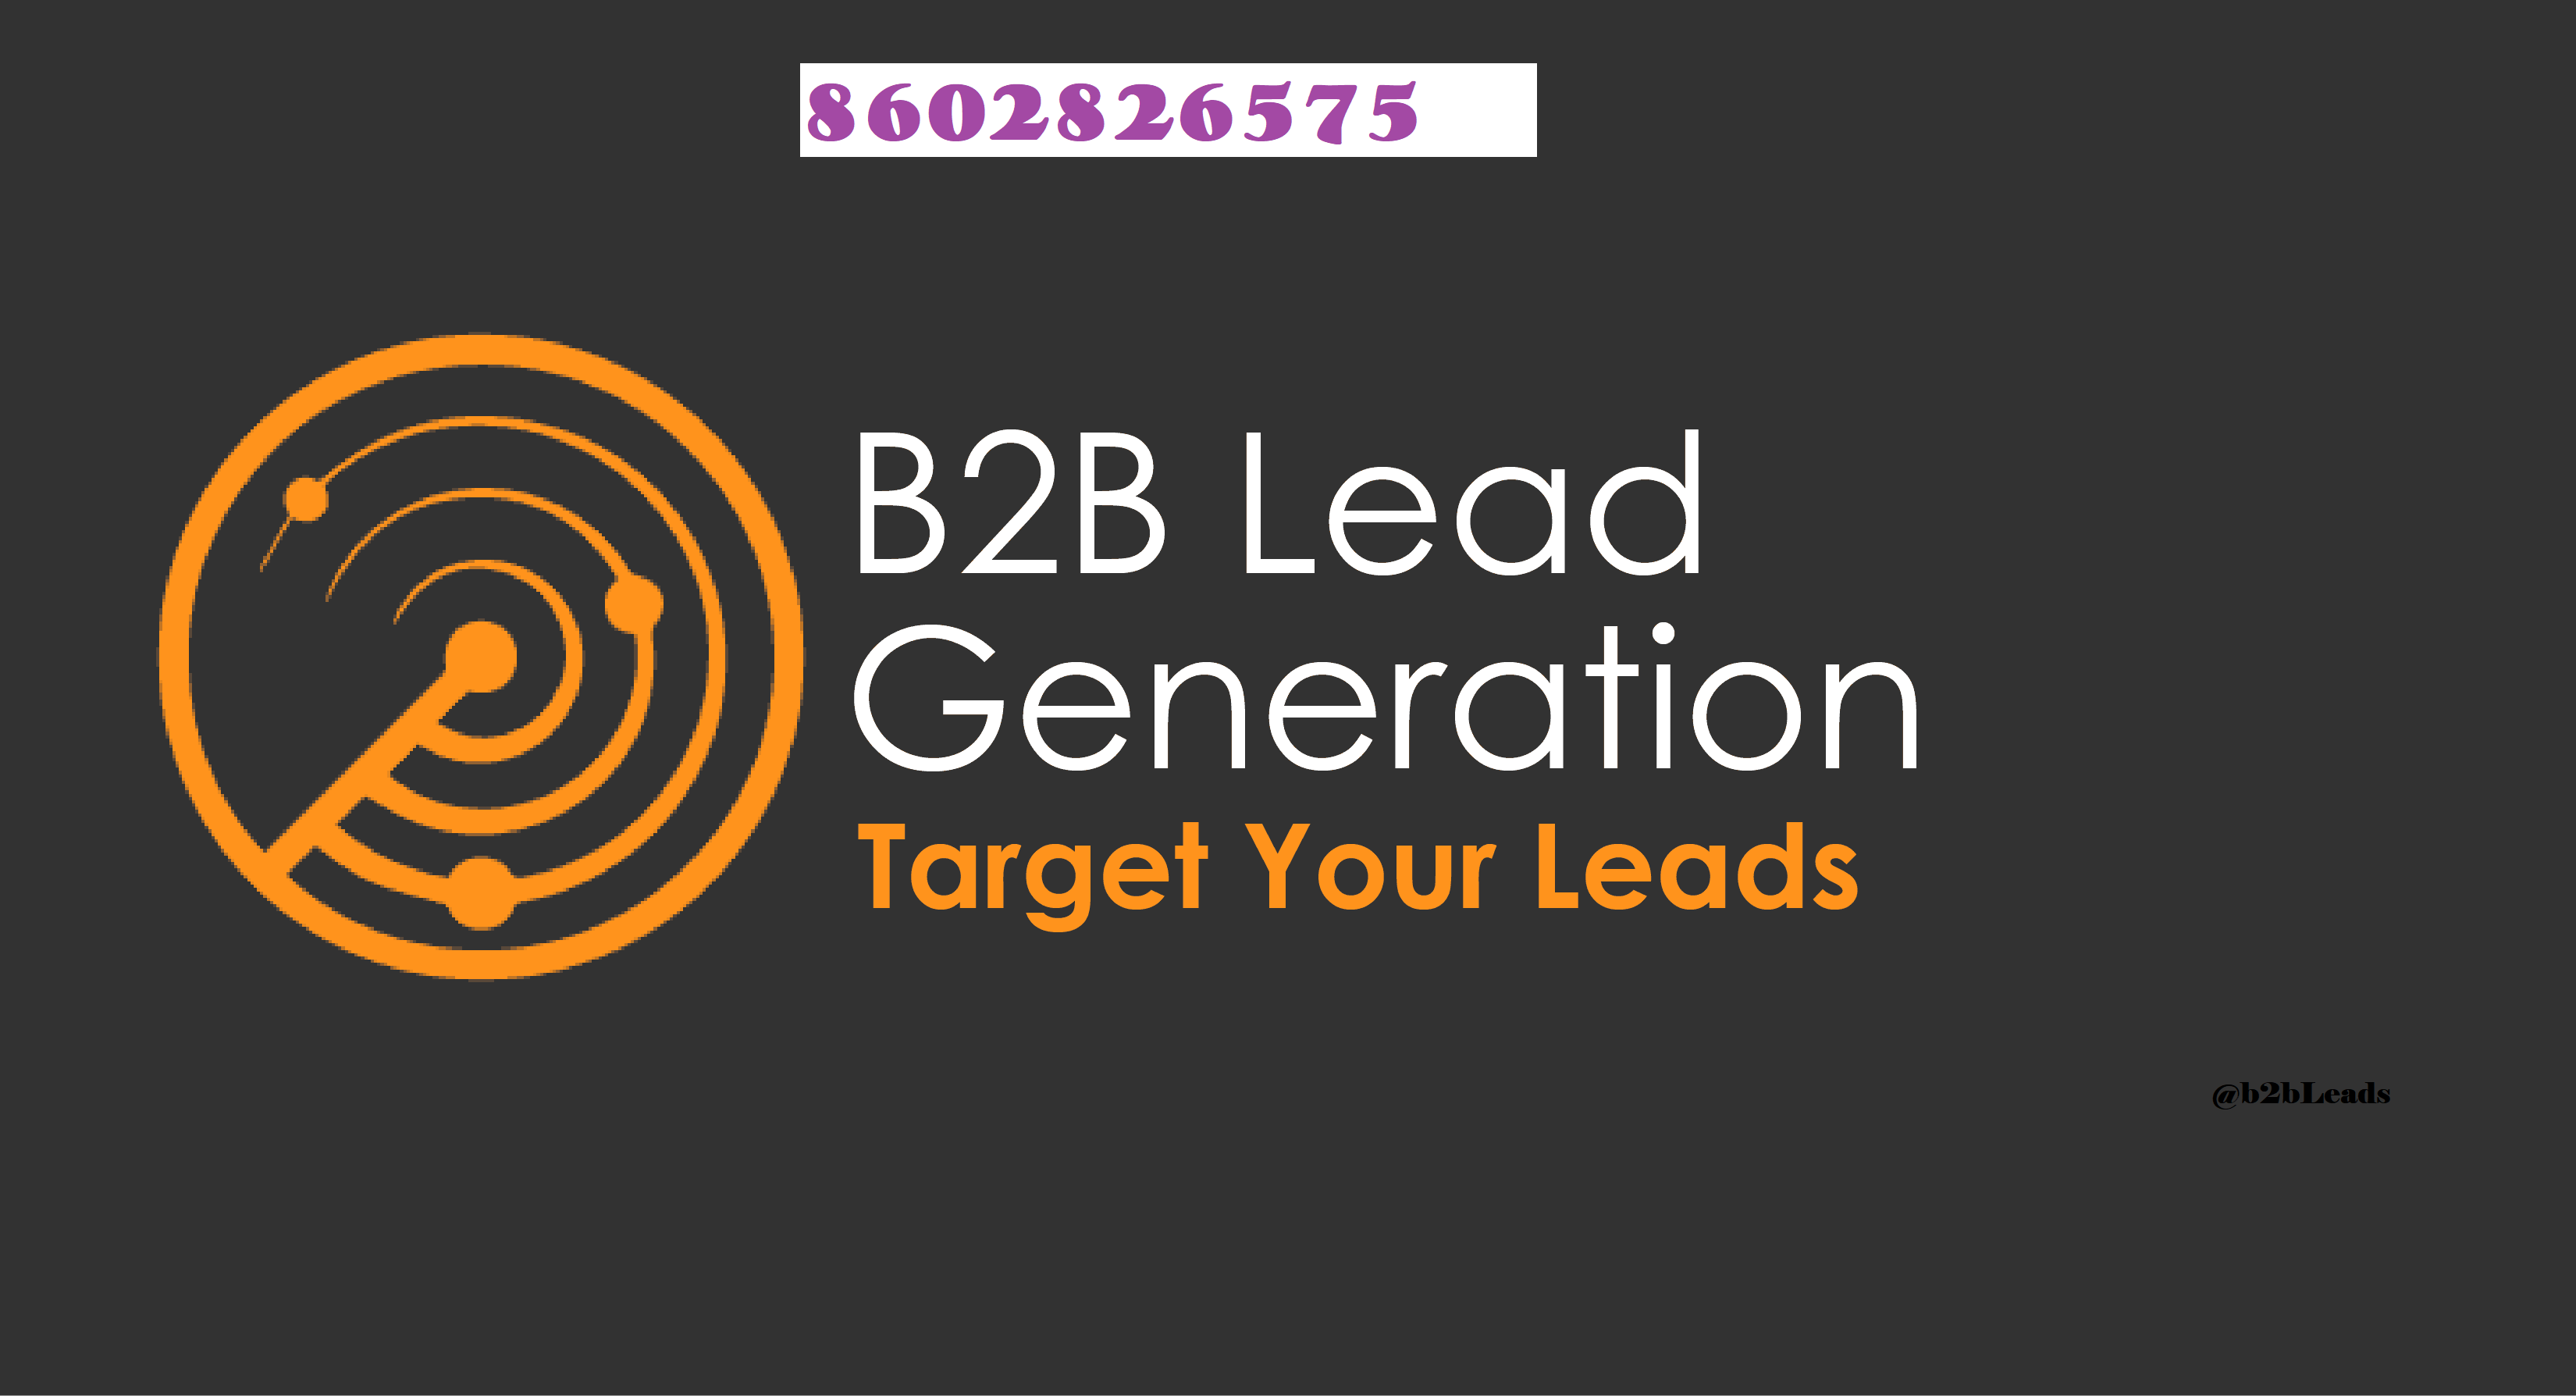 Lead Generation, Database Seller, SEO & Digital Marketing in Bhopal Madhya Pradesh